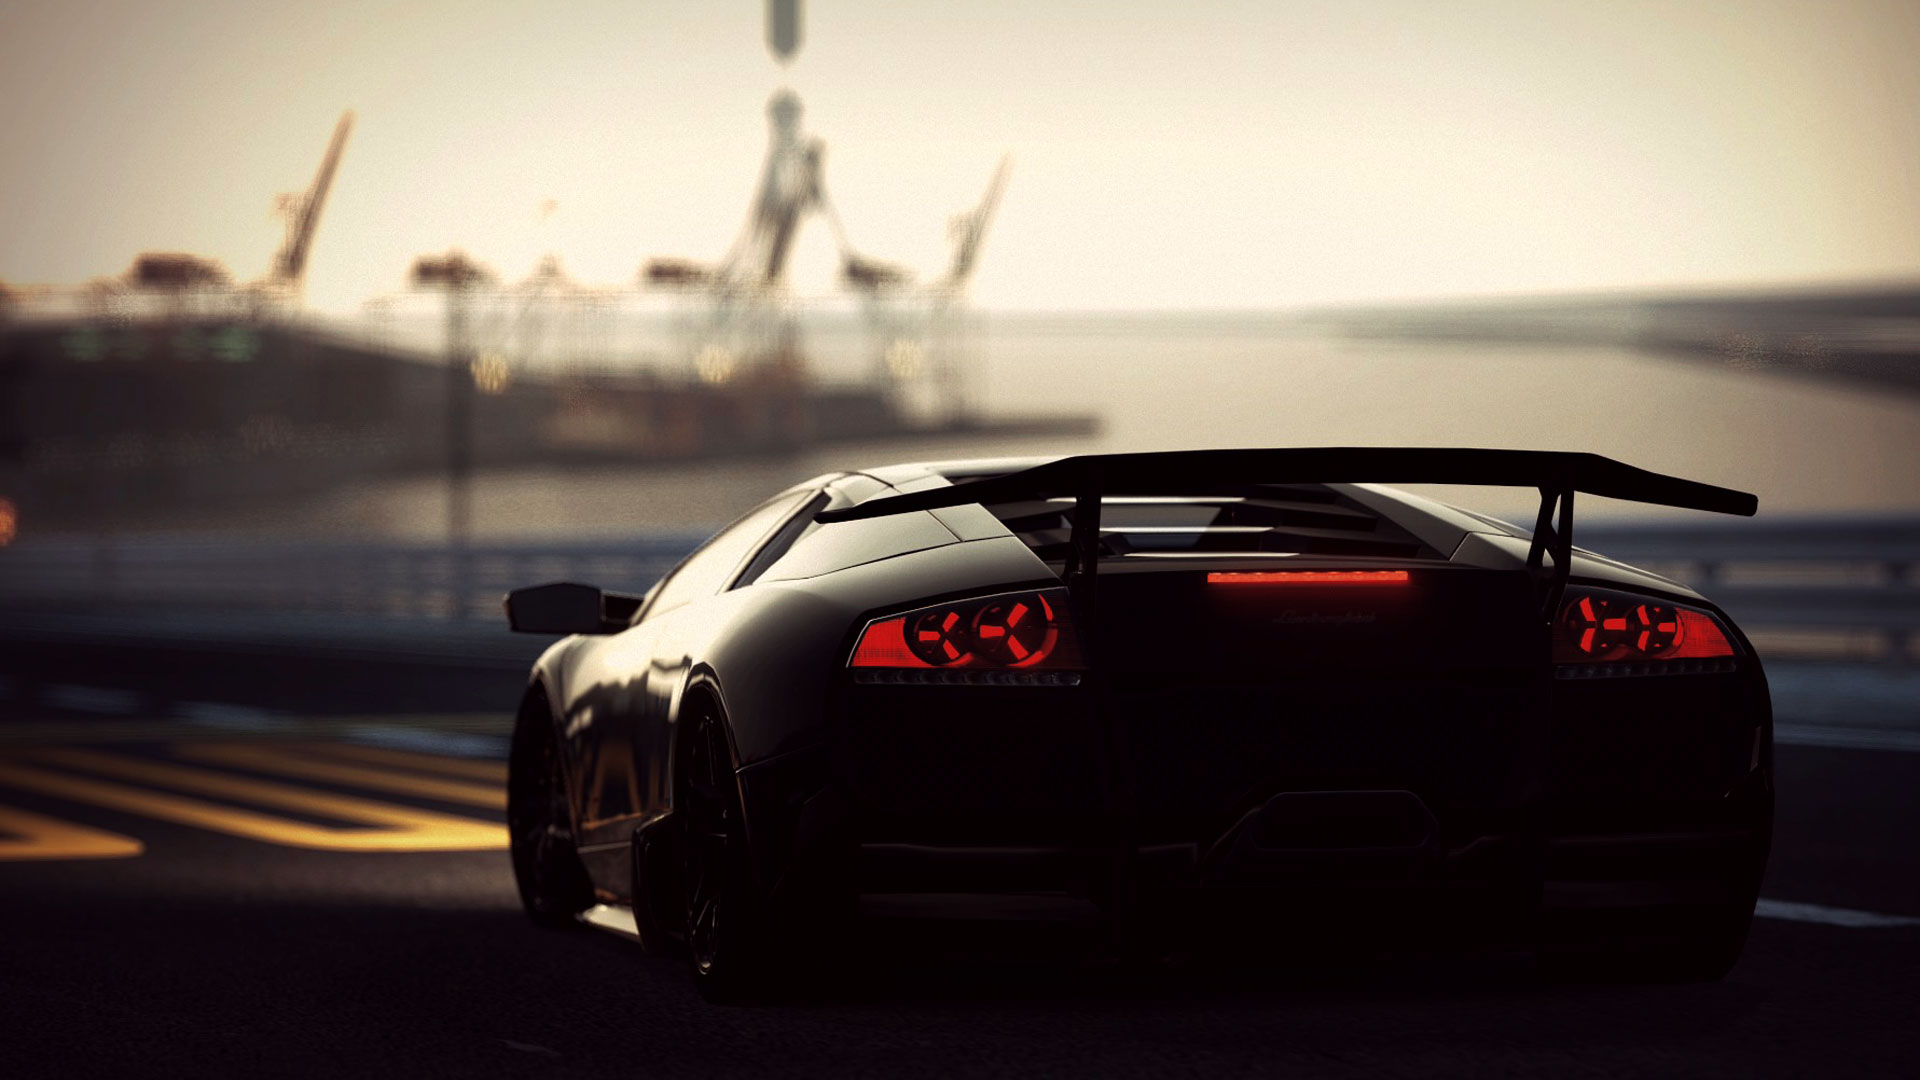 Lamborghini Dark wallpapers HD  PixelsTalk.Net